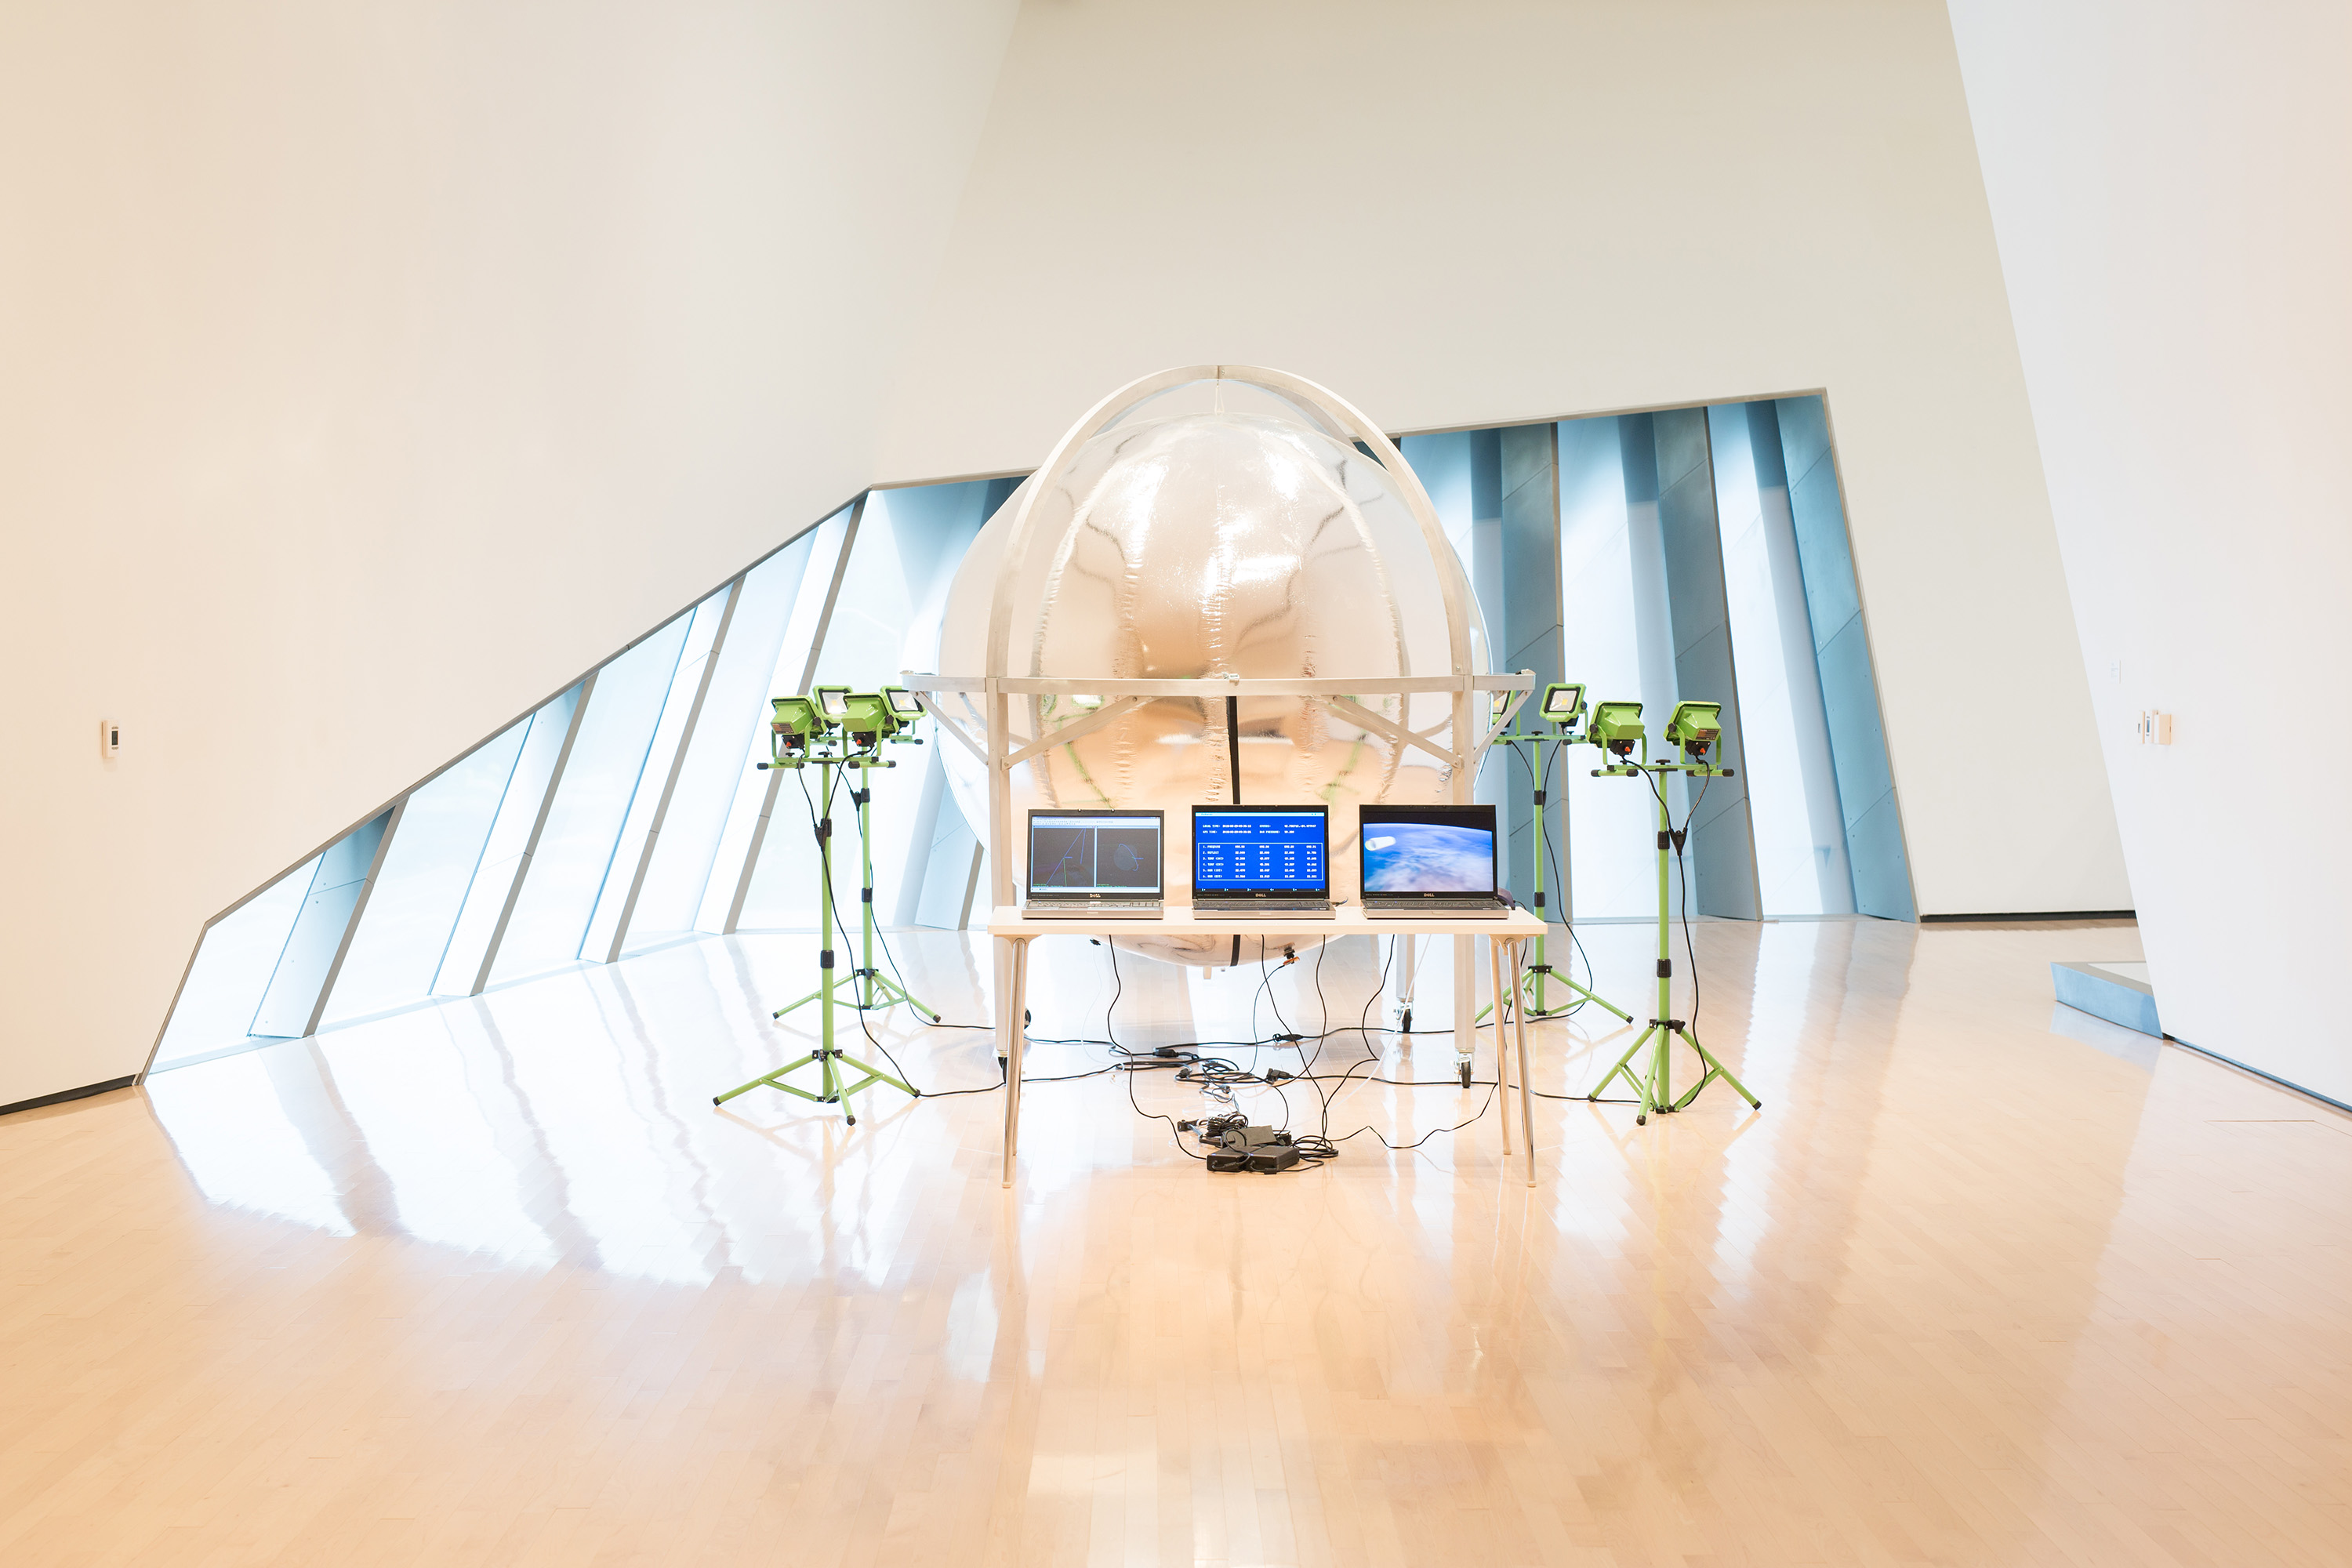 Trevor Paglen, <i>Prototype for a Nonfunctional Satellite (Design 4, Build 2)</i>, 2013, installation view at the Eli and Edythe Broad Art Museum at Michigan State University, 2015. Courtesy of the artist and Altman Siegel Gallery, San Francisco. Photo: Eat Pomegranate Photography